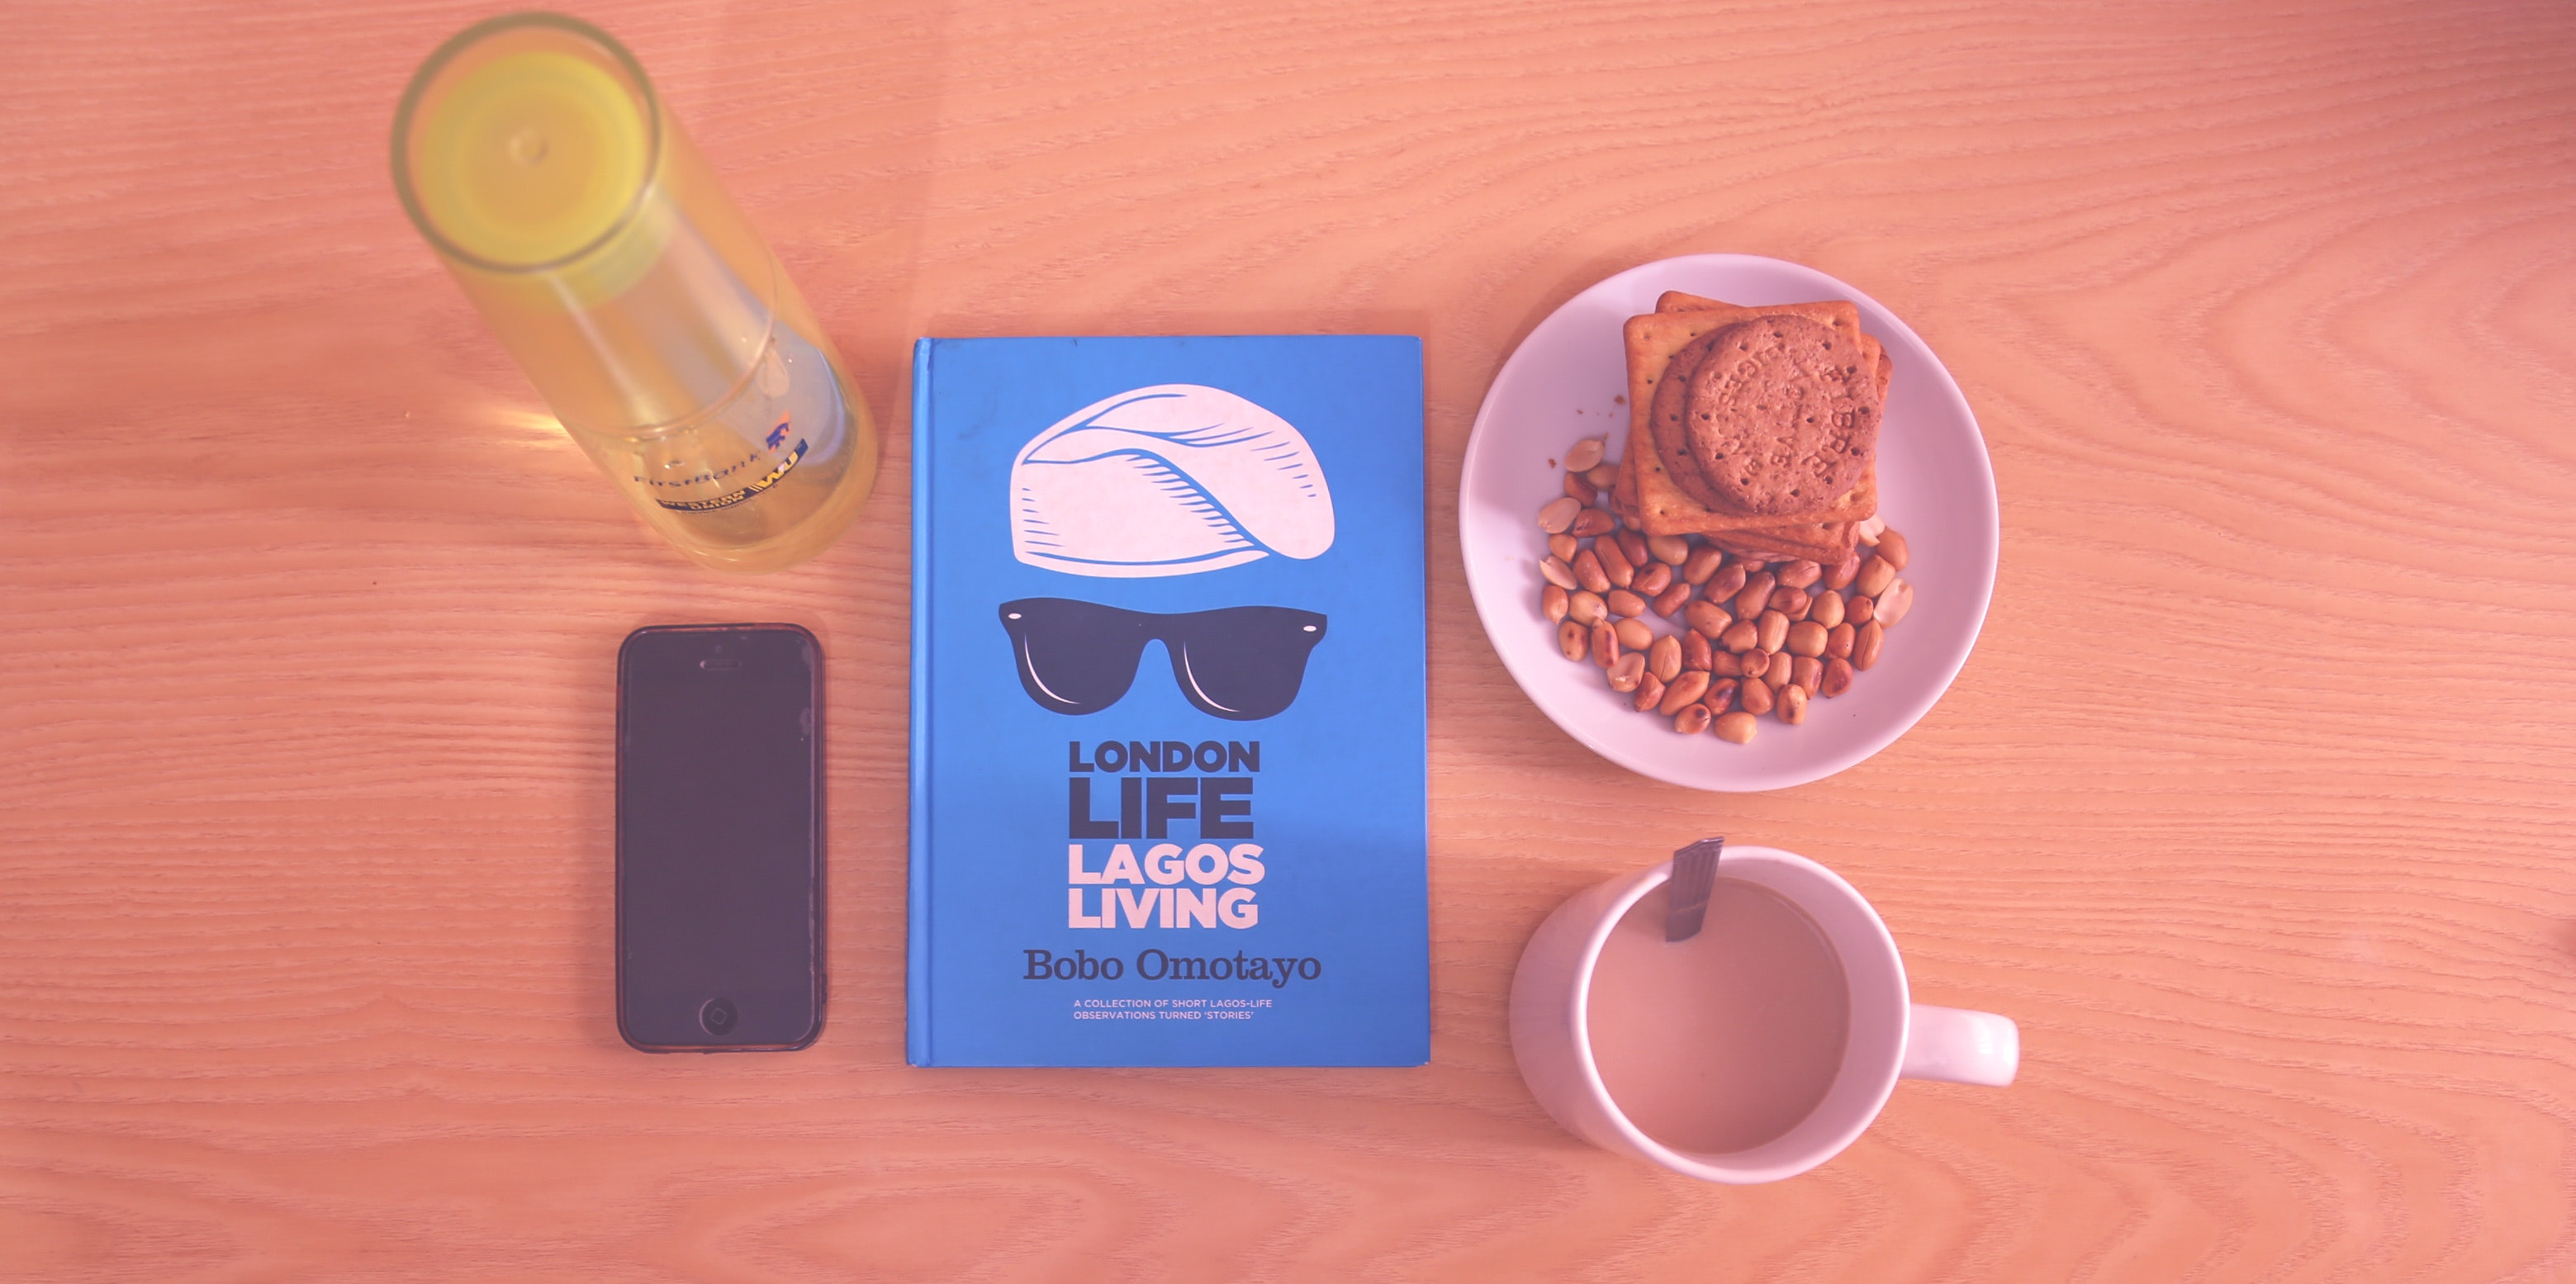 Peanuts and biscuits in white ceramic plate beside white ceramic mug near lagos living book photo